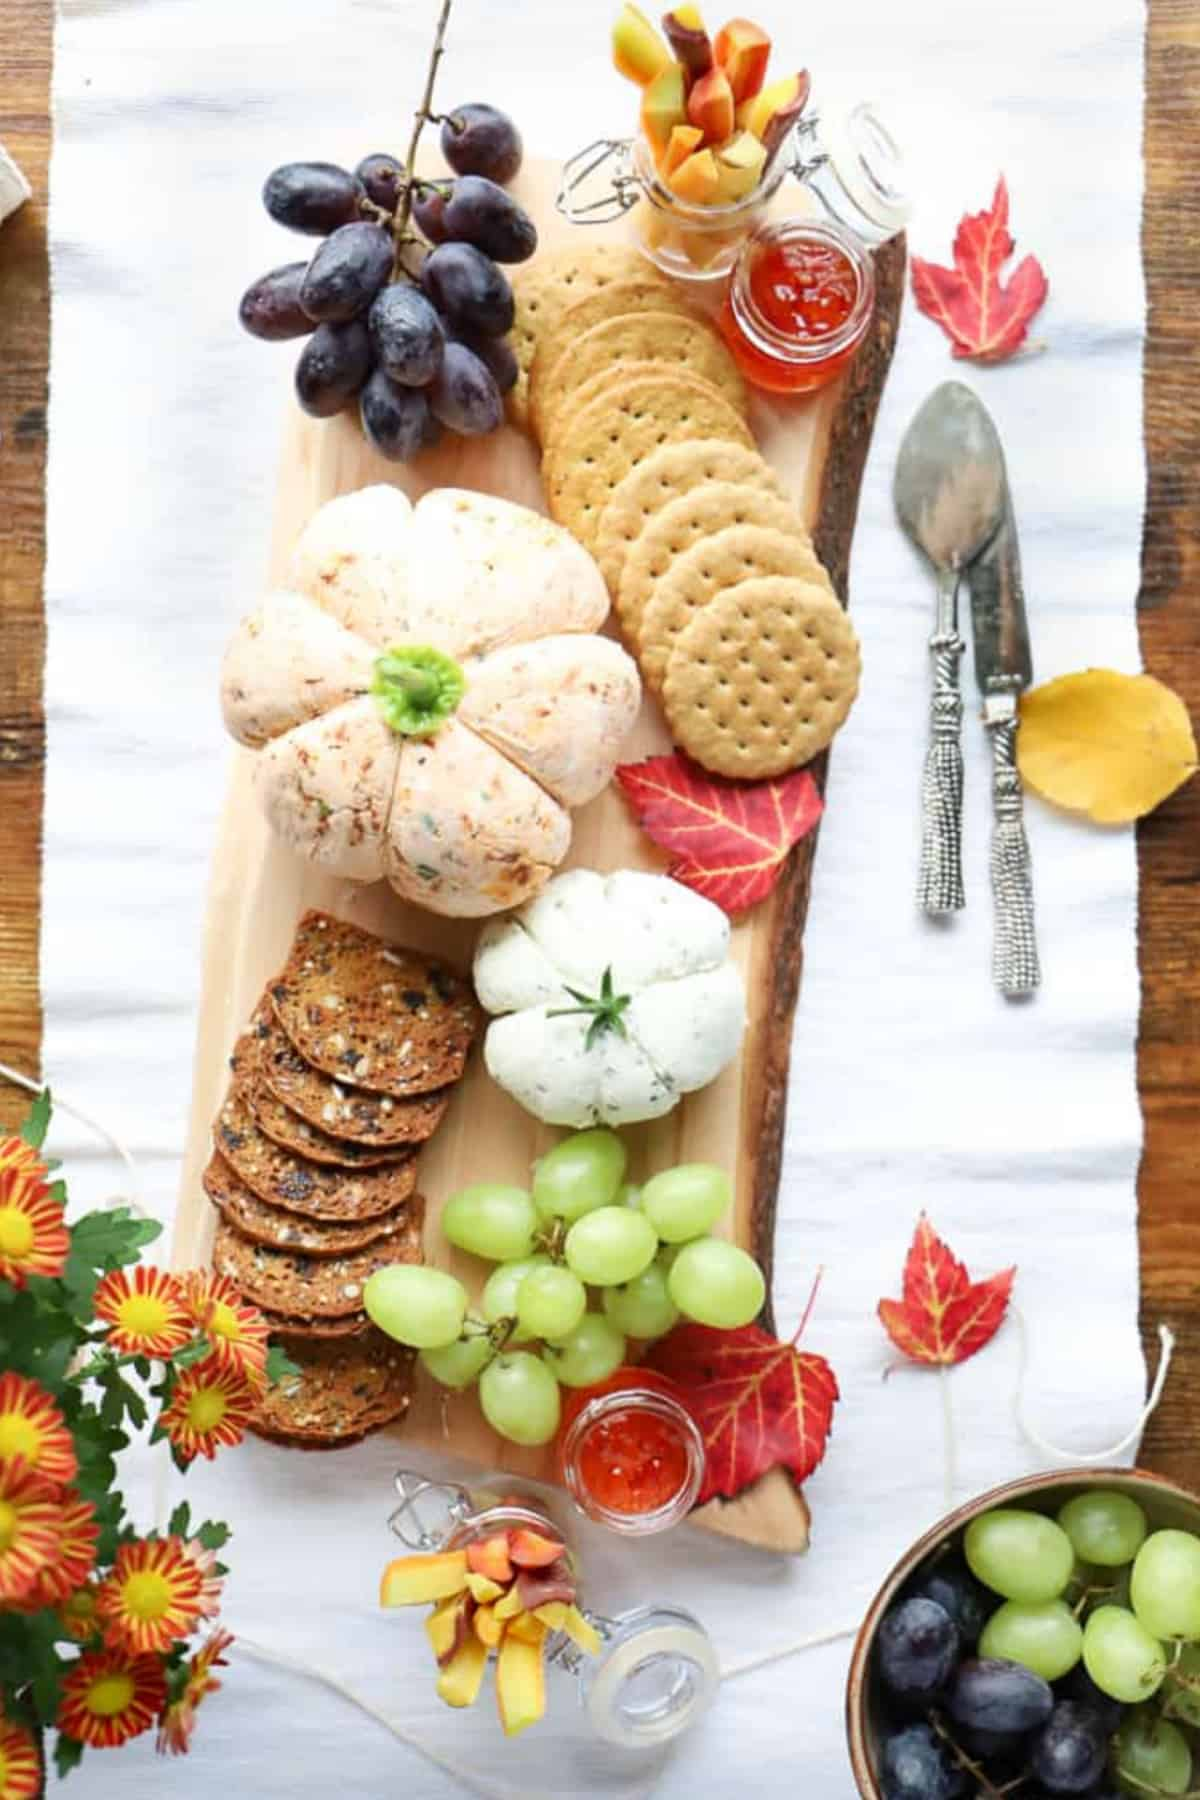 Pumpkin cheese balls on a wooden board with grapes and crackers.